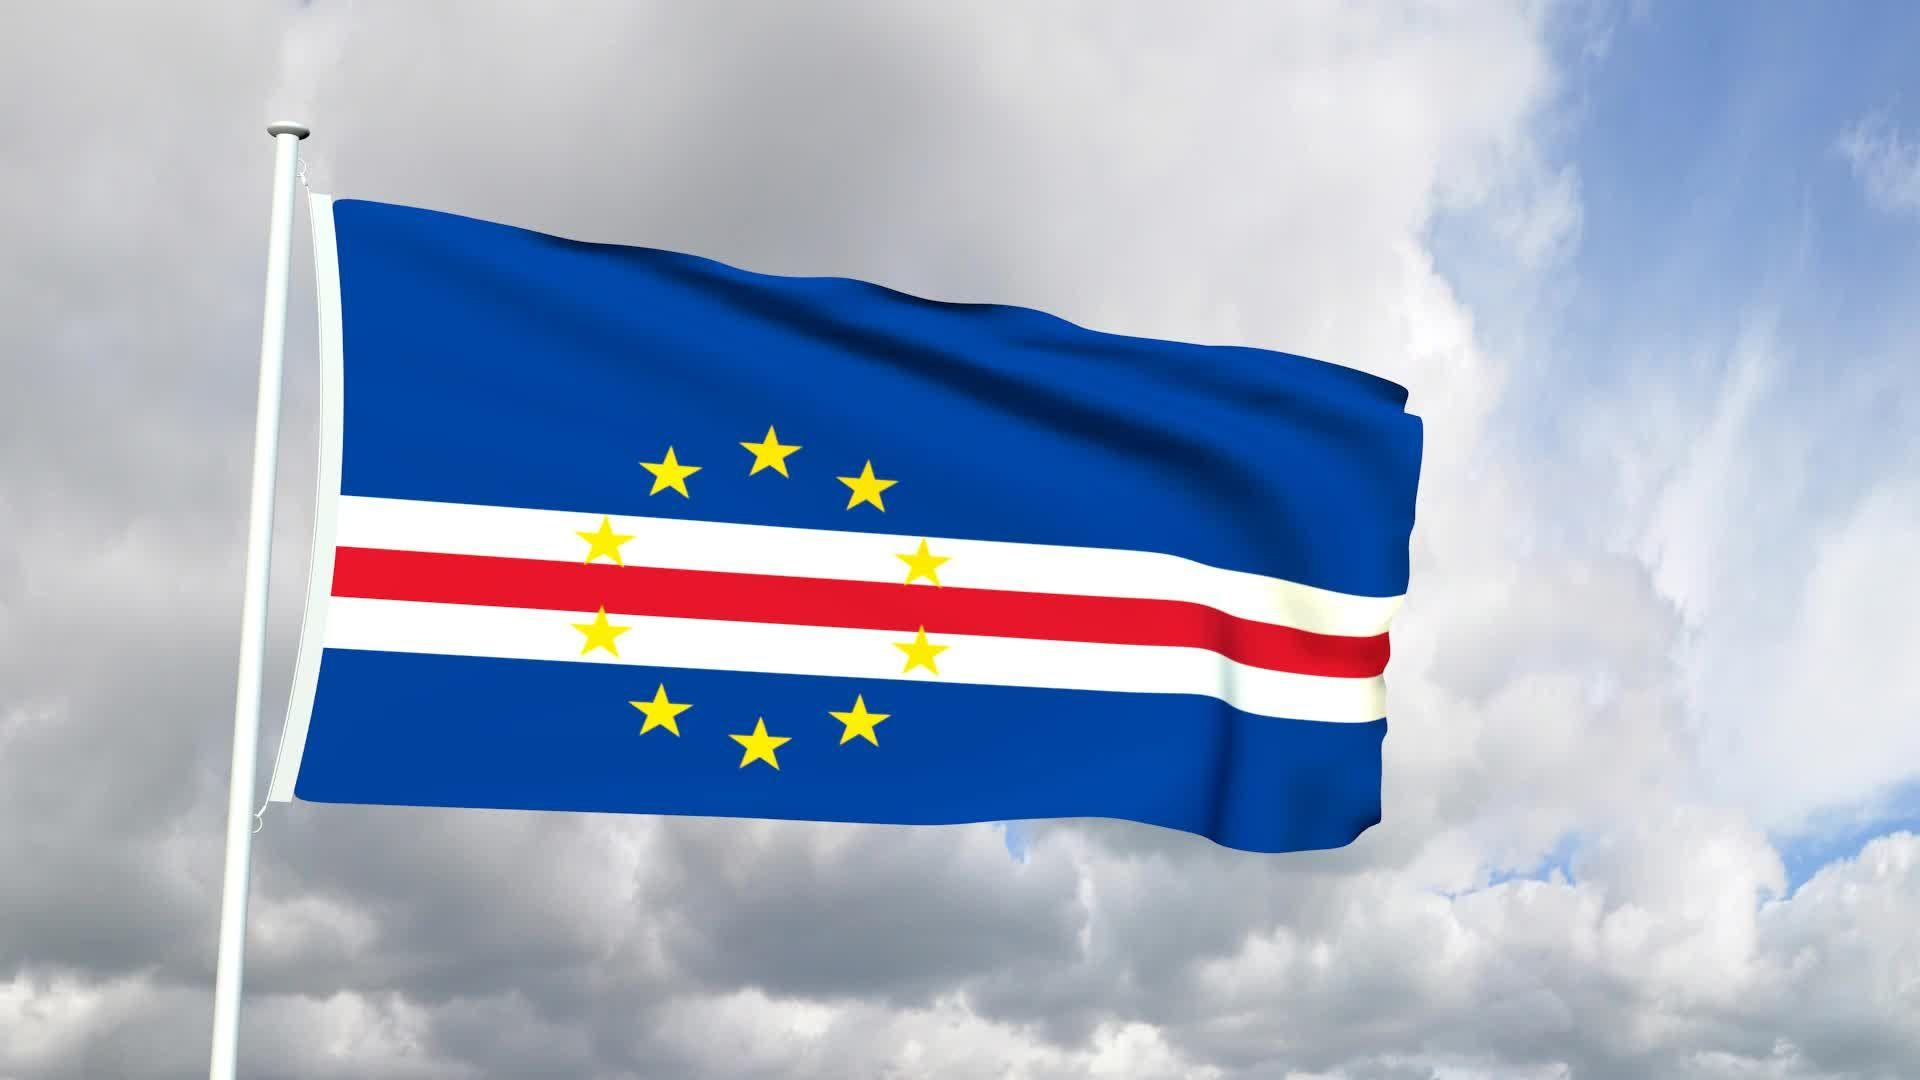 Flag Of Cape Verde - A Symbol Of Peace And Effort